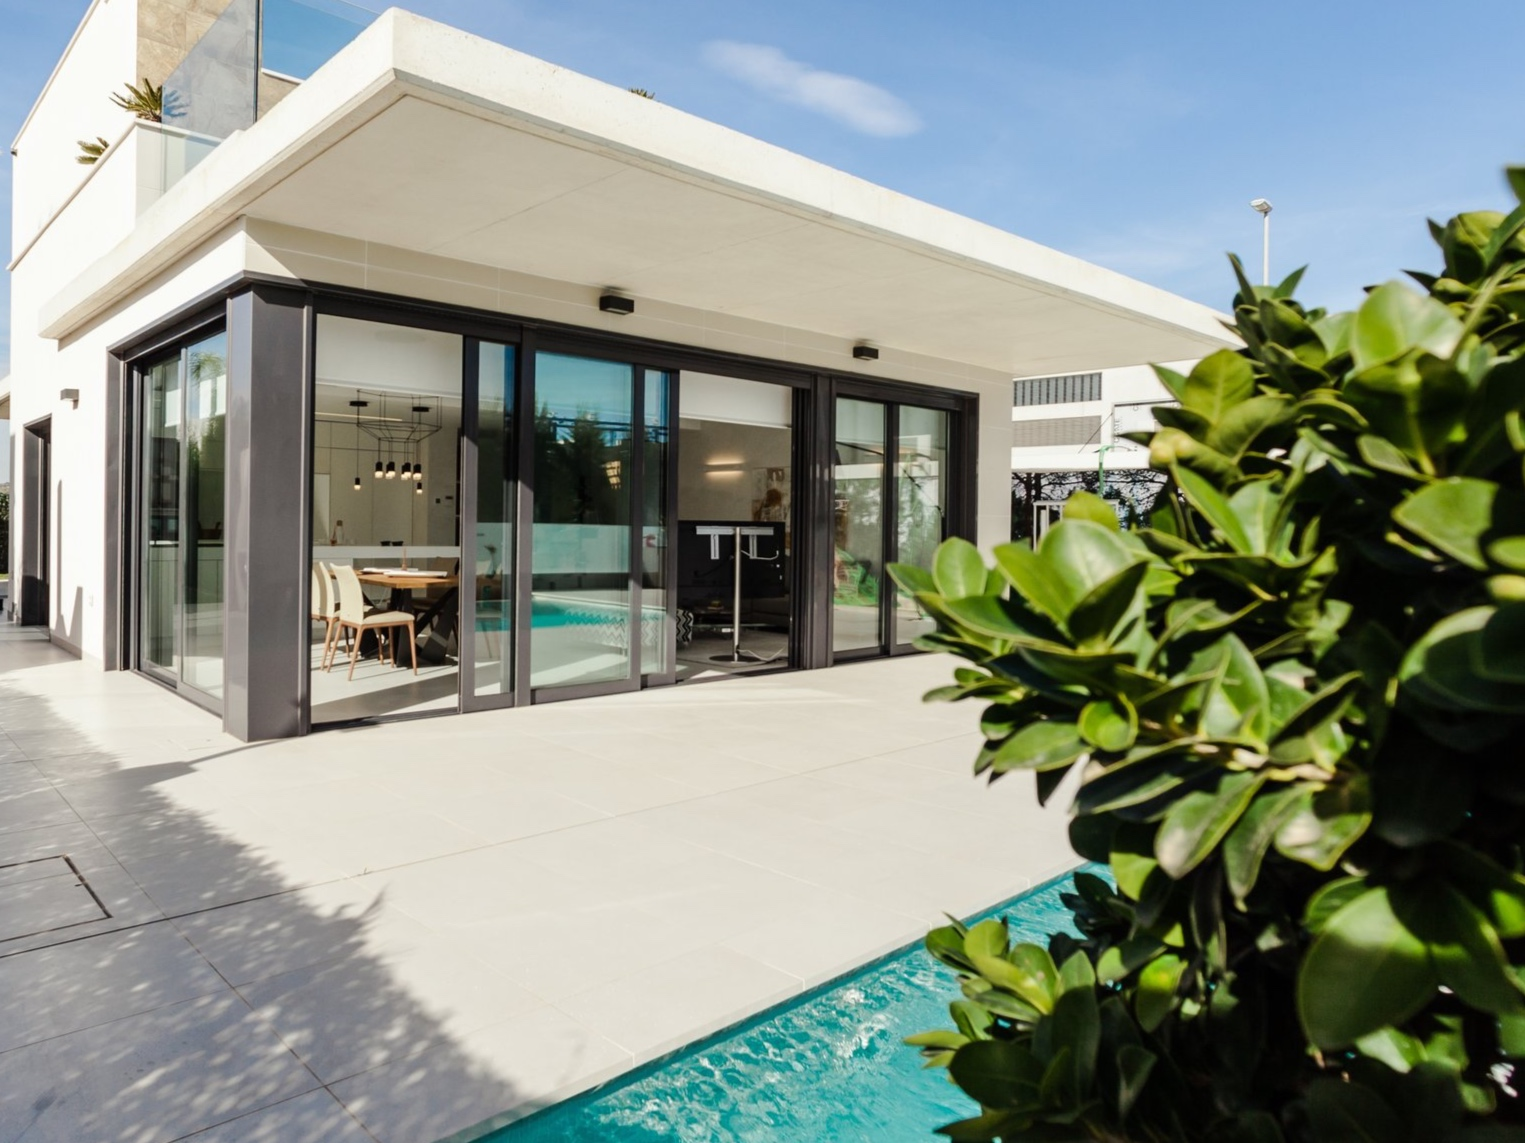 Facility Management - We will manage your home, pool and garden while you're away. We can also coordinate renovation and conversion work.